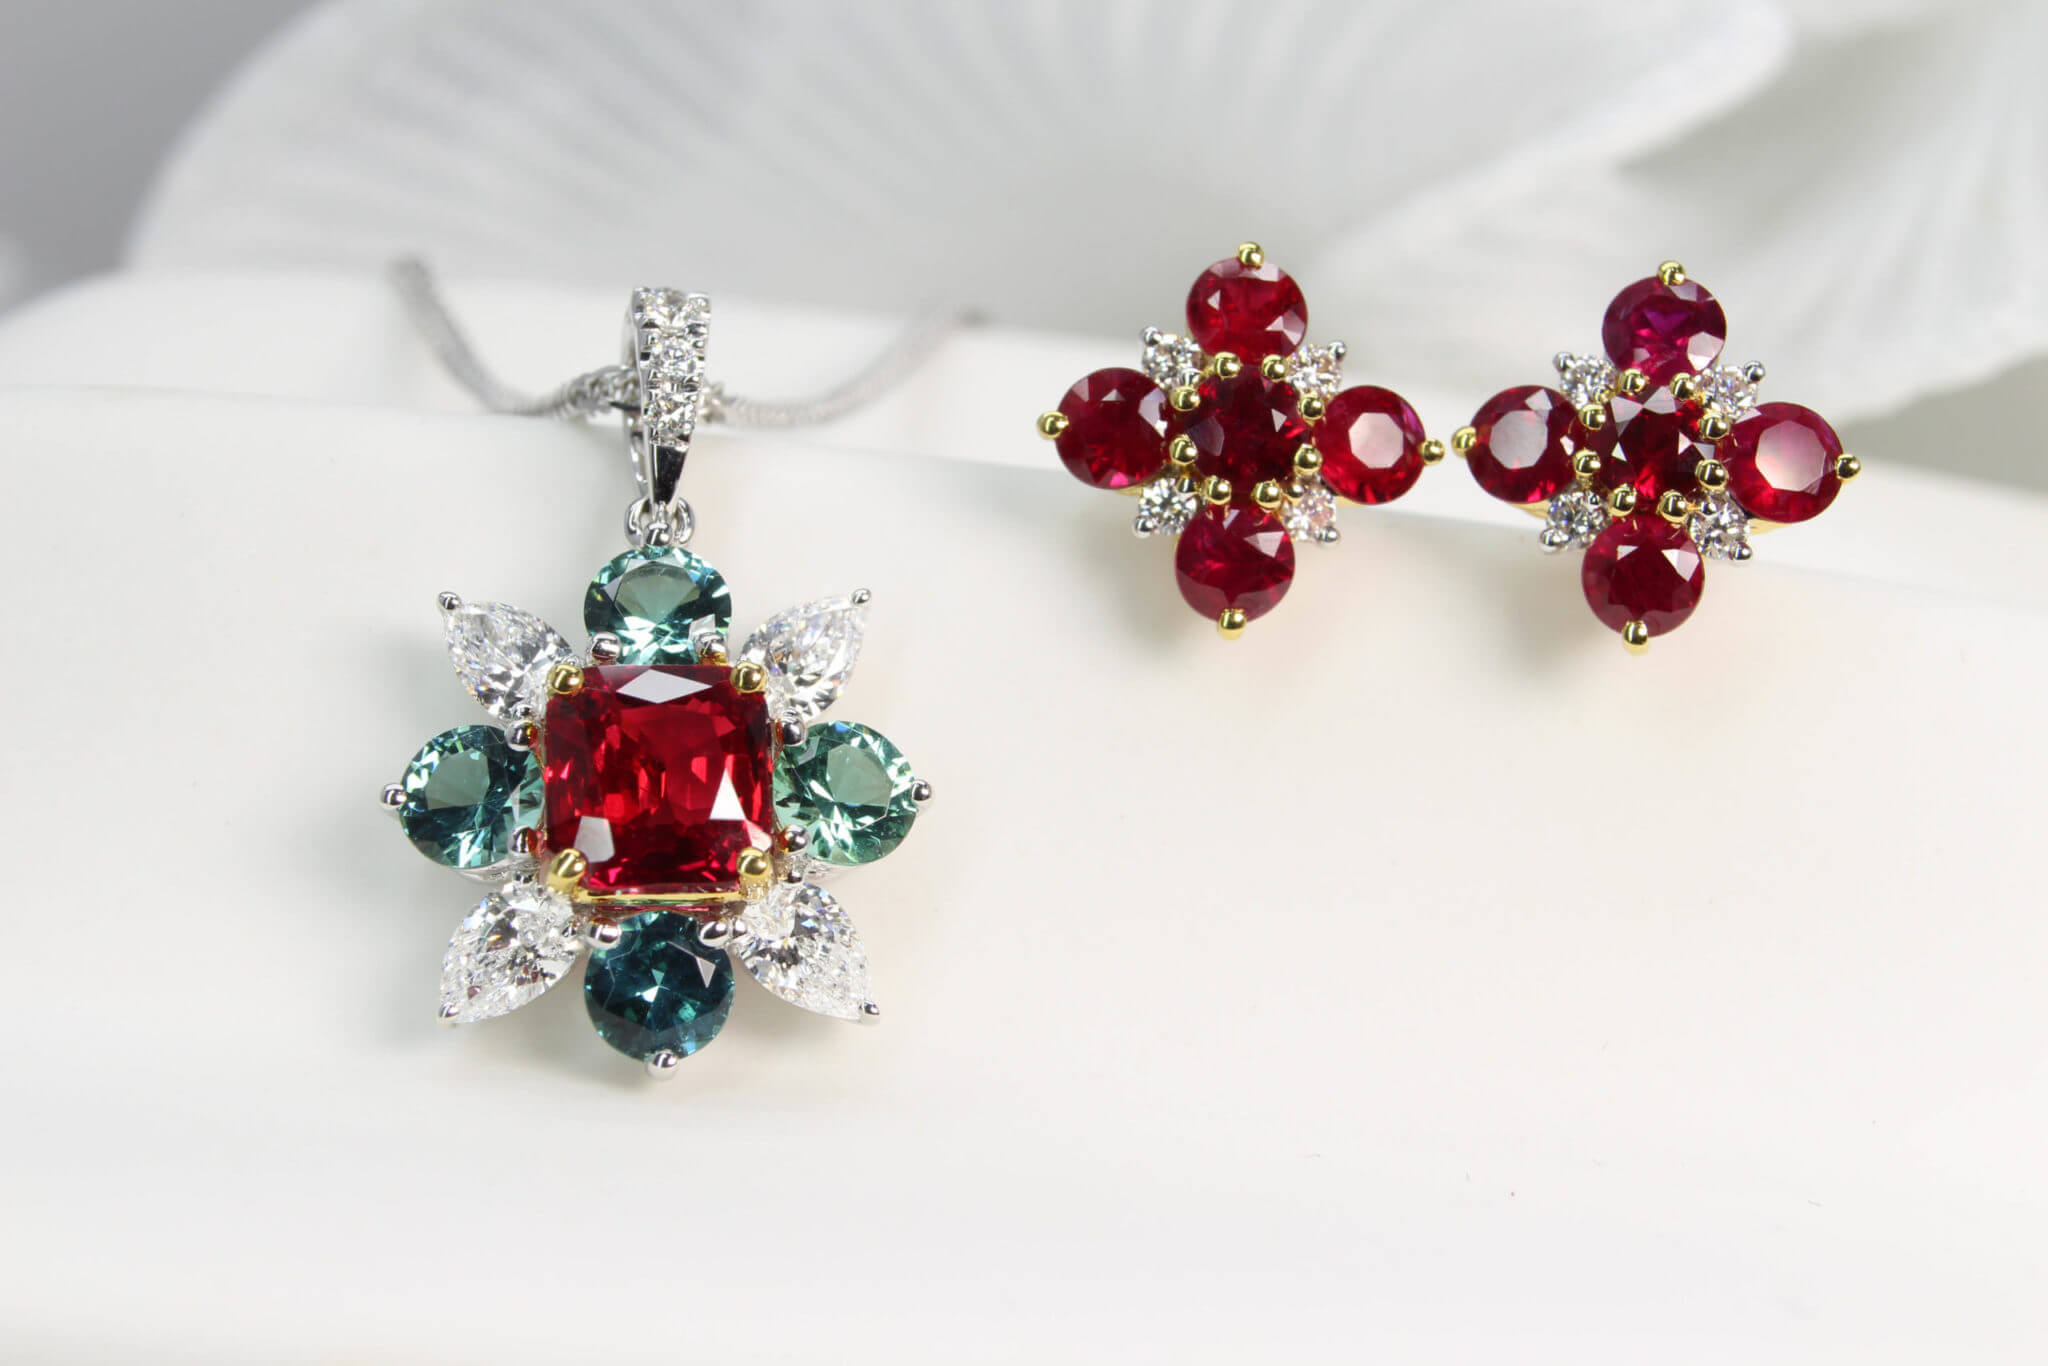 40th Anniversary Wedding Jewellery, Featuring unheated ruby depend clustered with round green tourmaline and pear diamond around the ruby gem. The cluster earring with ruby and diamond gems design and customised for a 40th anniversary wedding jewellery | Local Singapore Jeweller in ruby and coloured gemstone